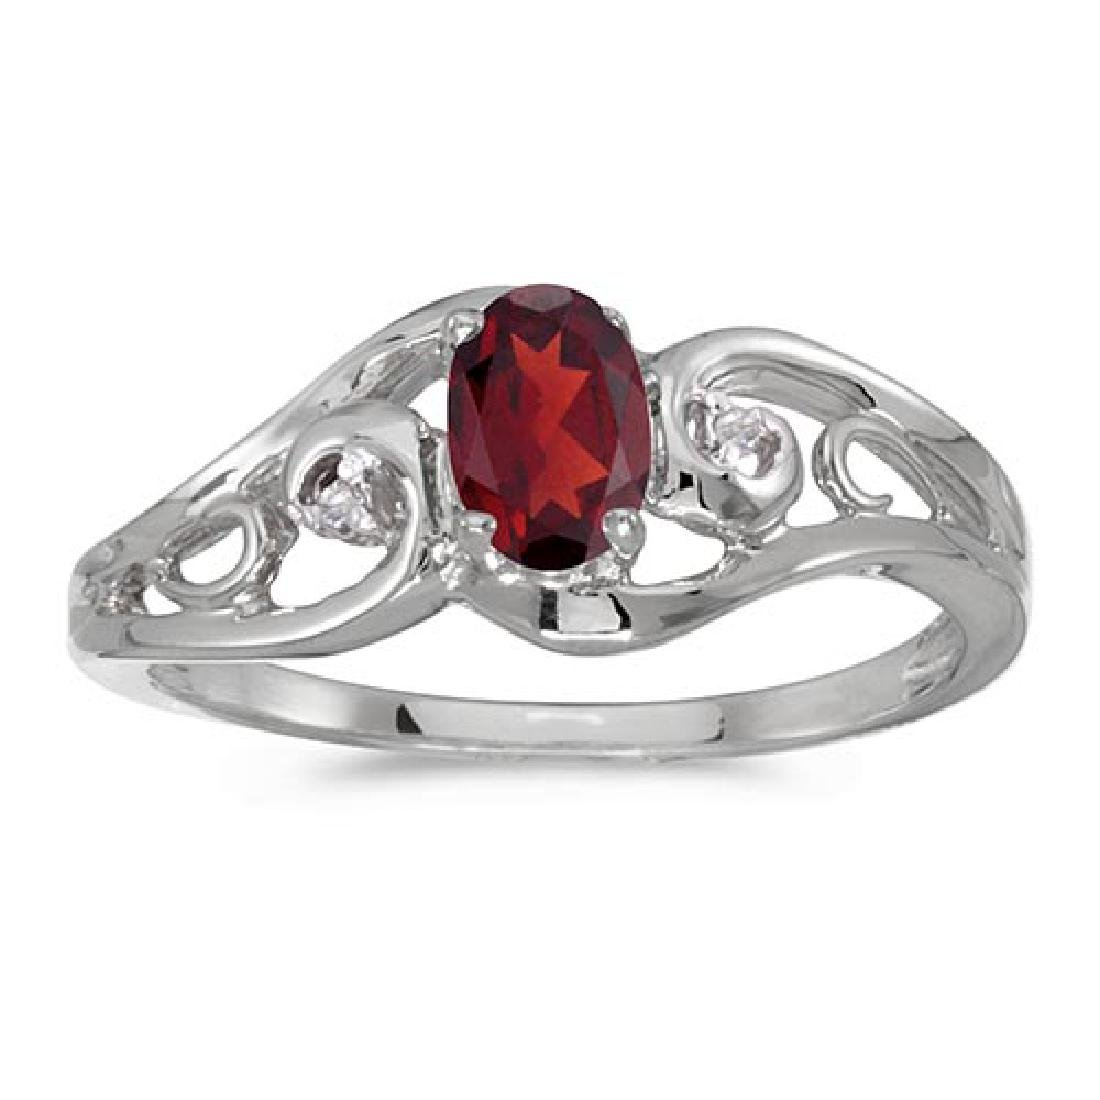 Certified 14k White Gold Oval Garnet And Diamond Ring